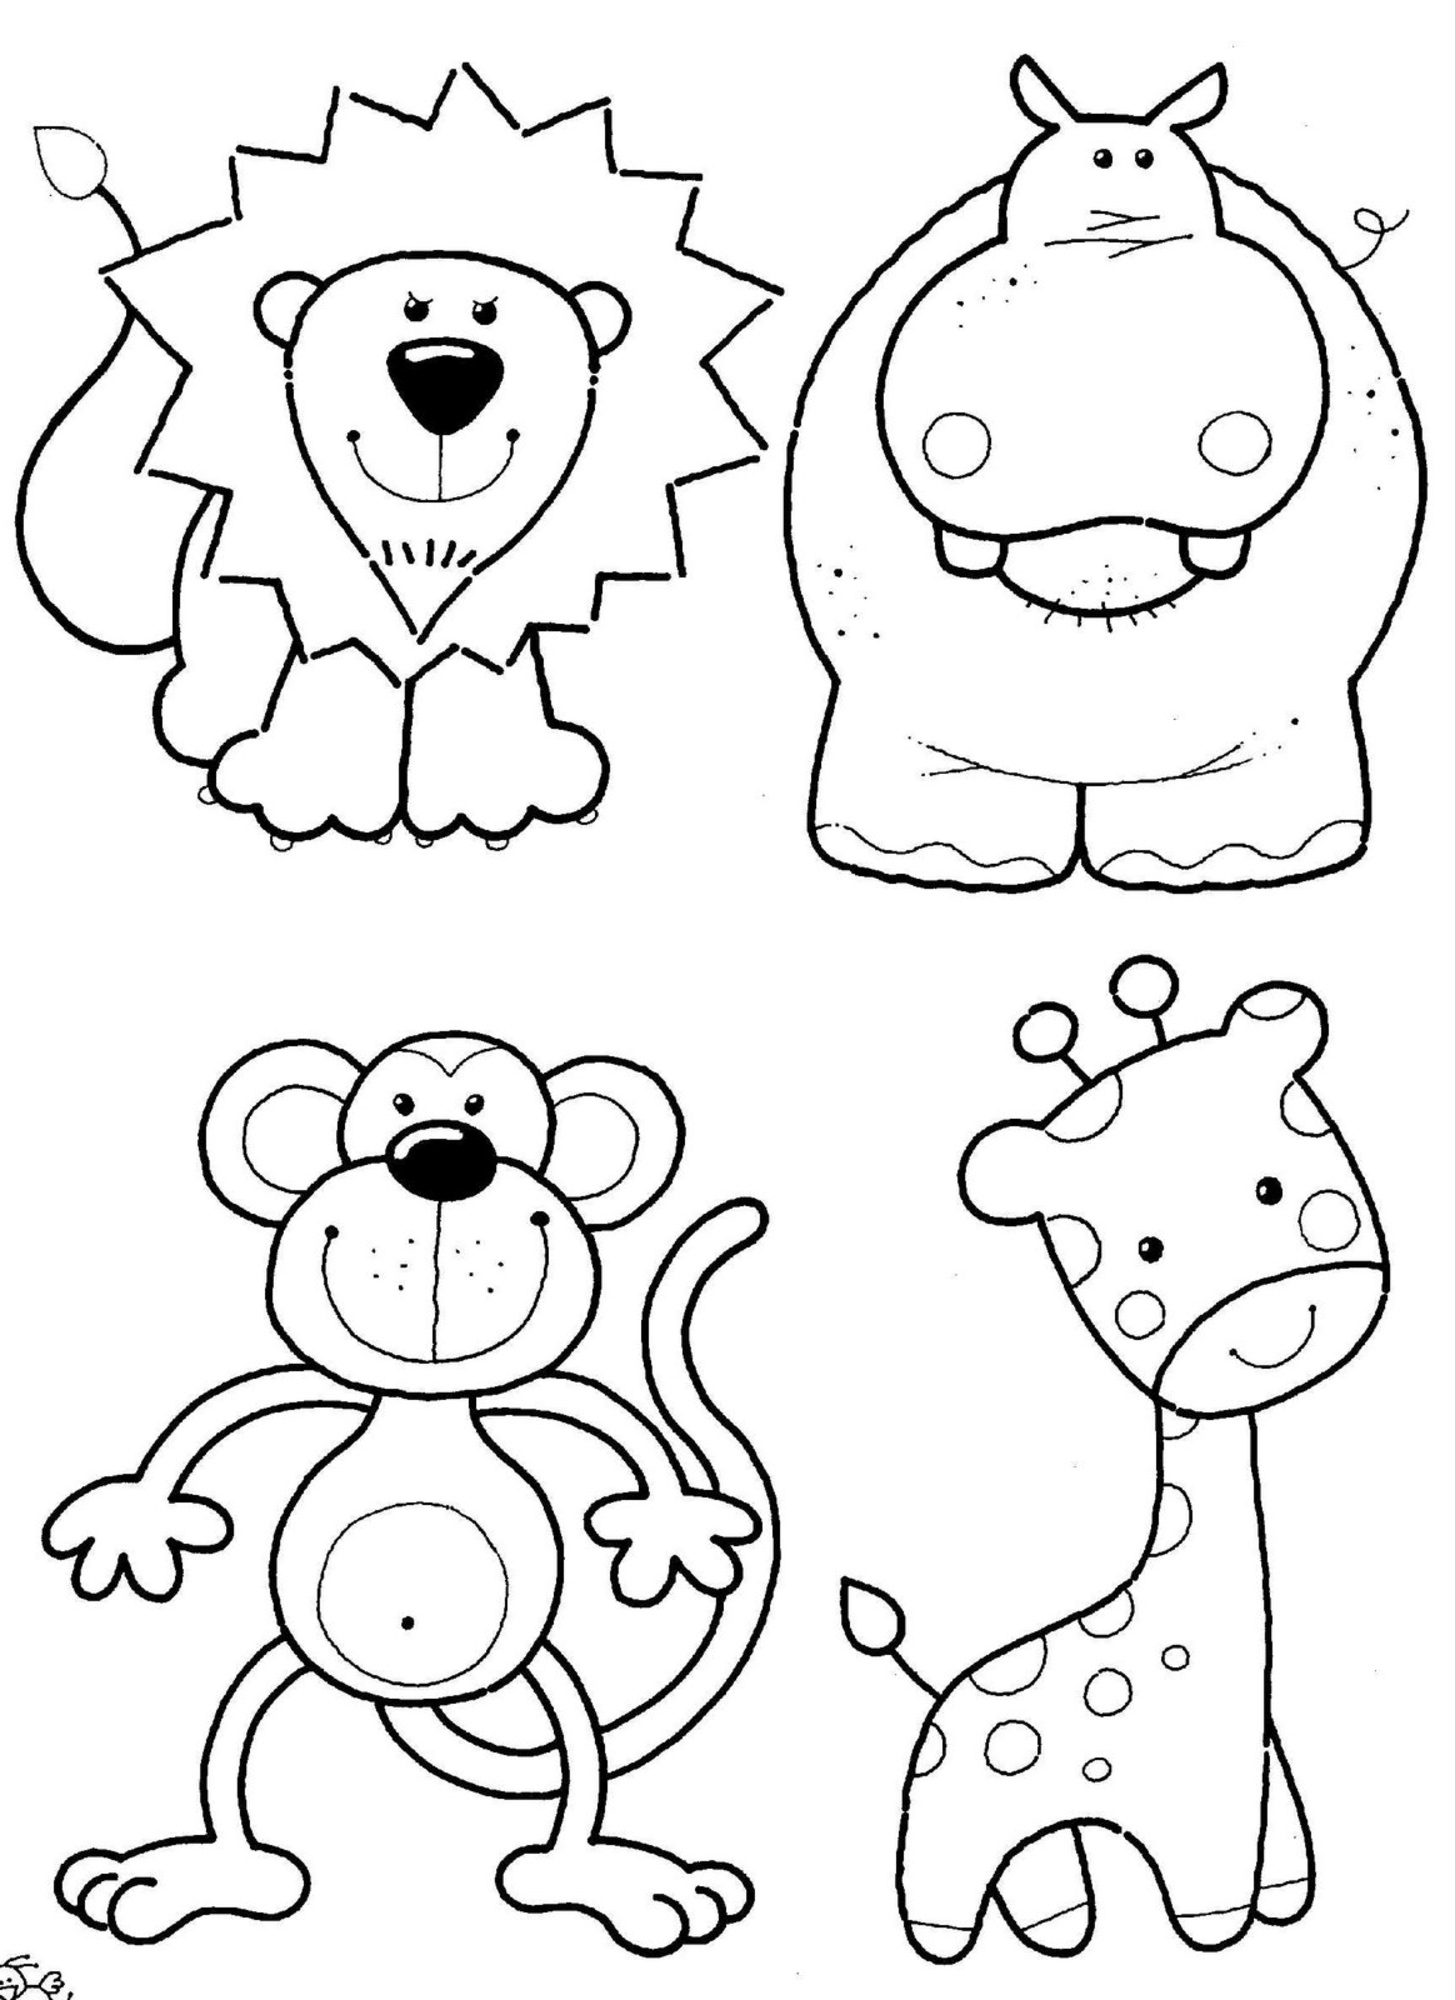 coloring pictures of animals animal coloring pages best coloring pages for kids animals coloring pictures of